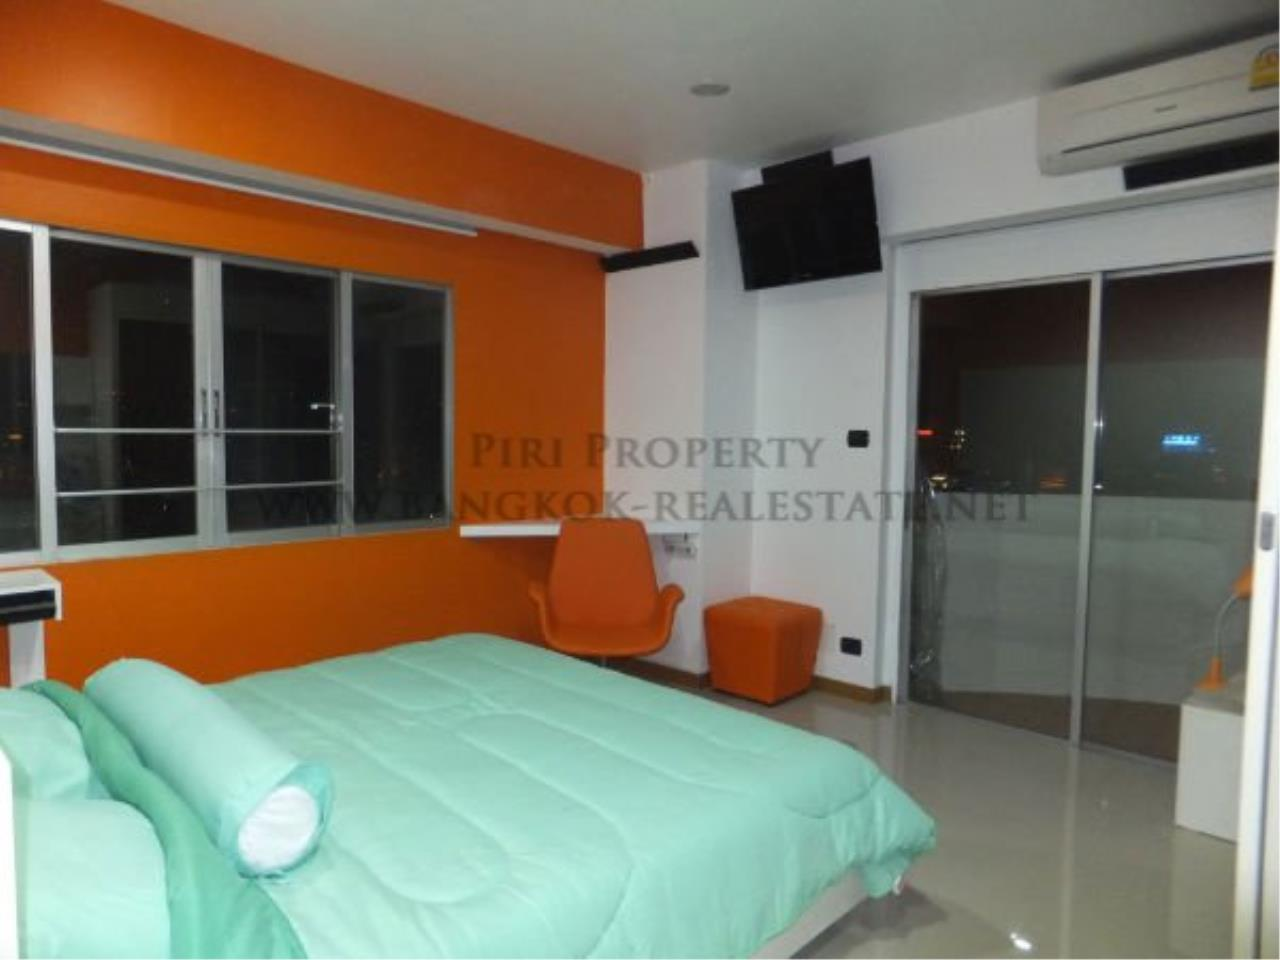 Piri Property Agency's Wittayu Complex - Spacious and Renovated 3 BR Condo 5